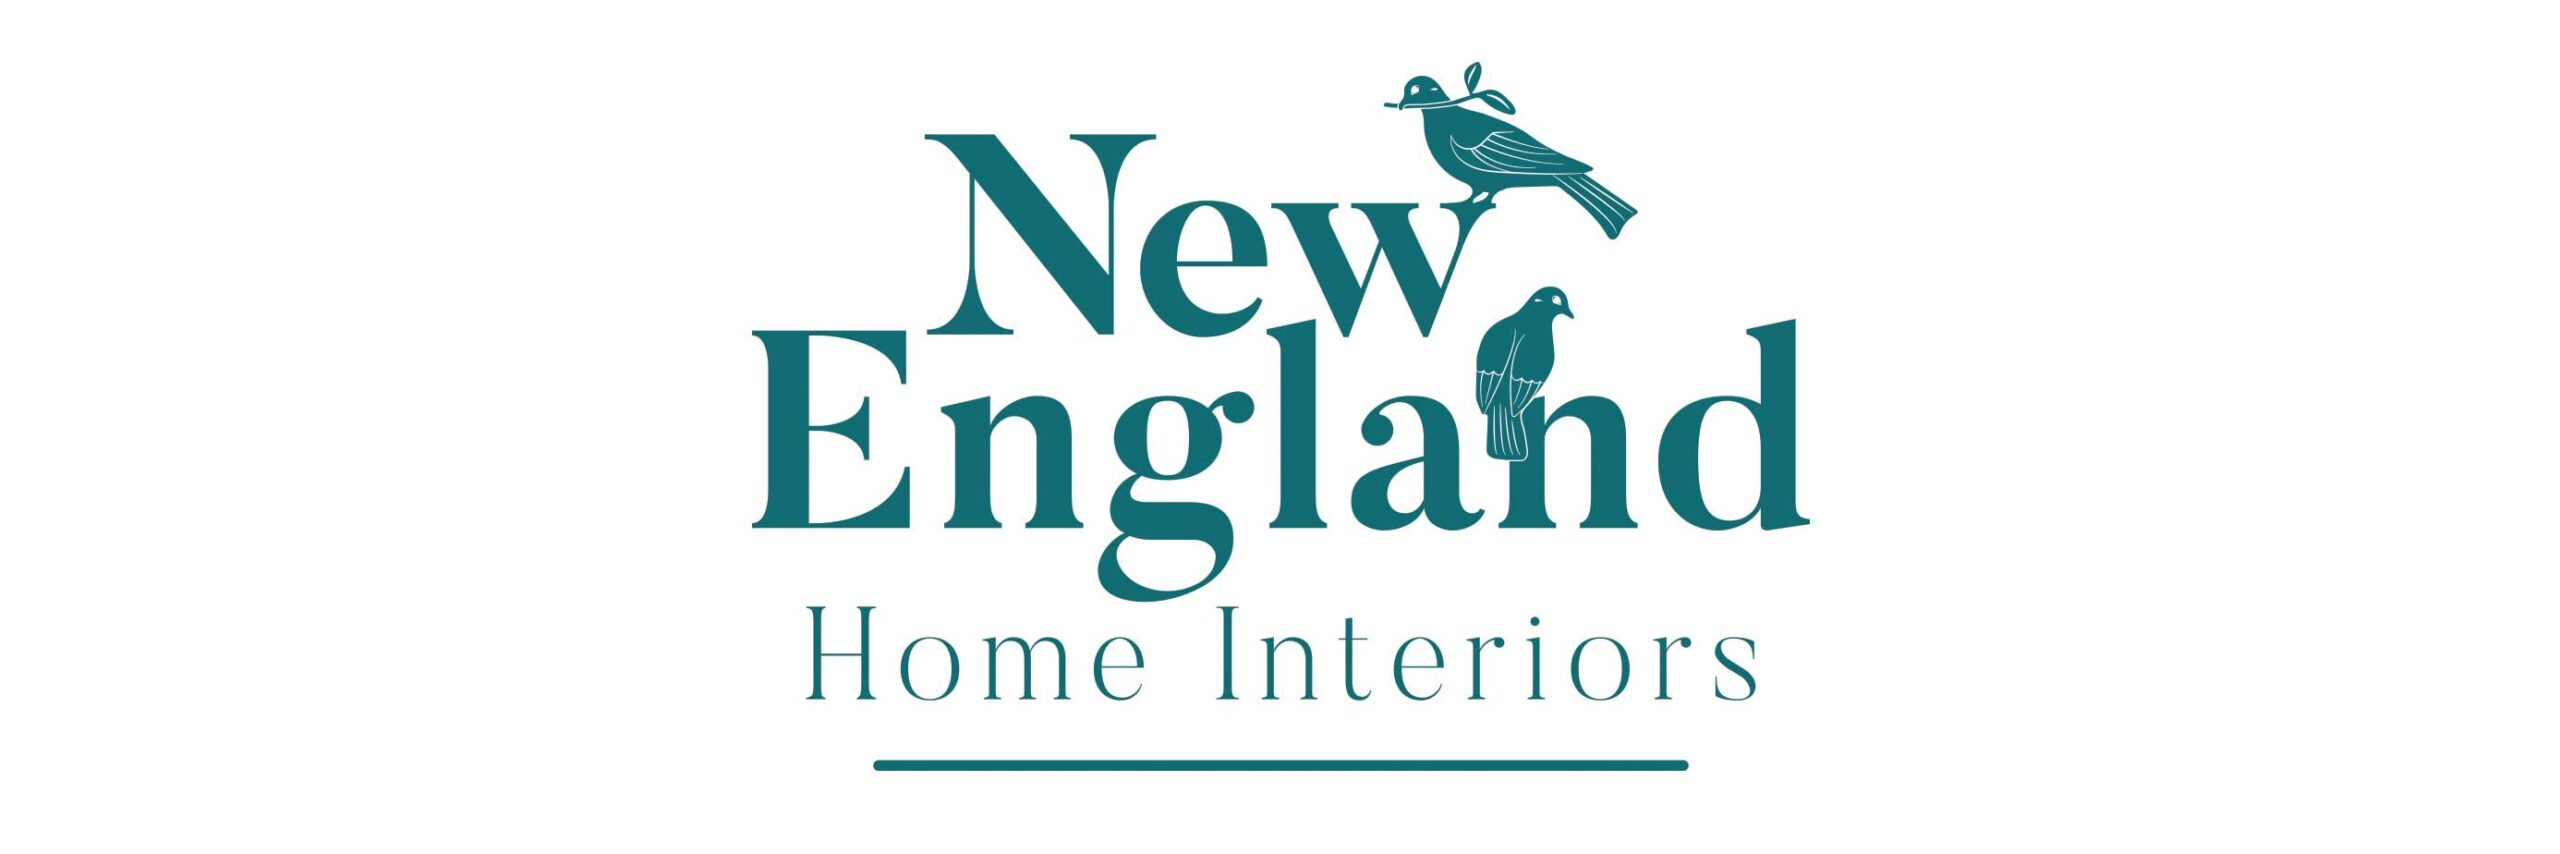 New England Home Interiors - New England Home